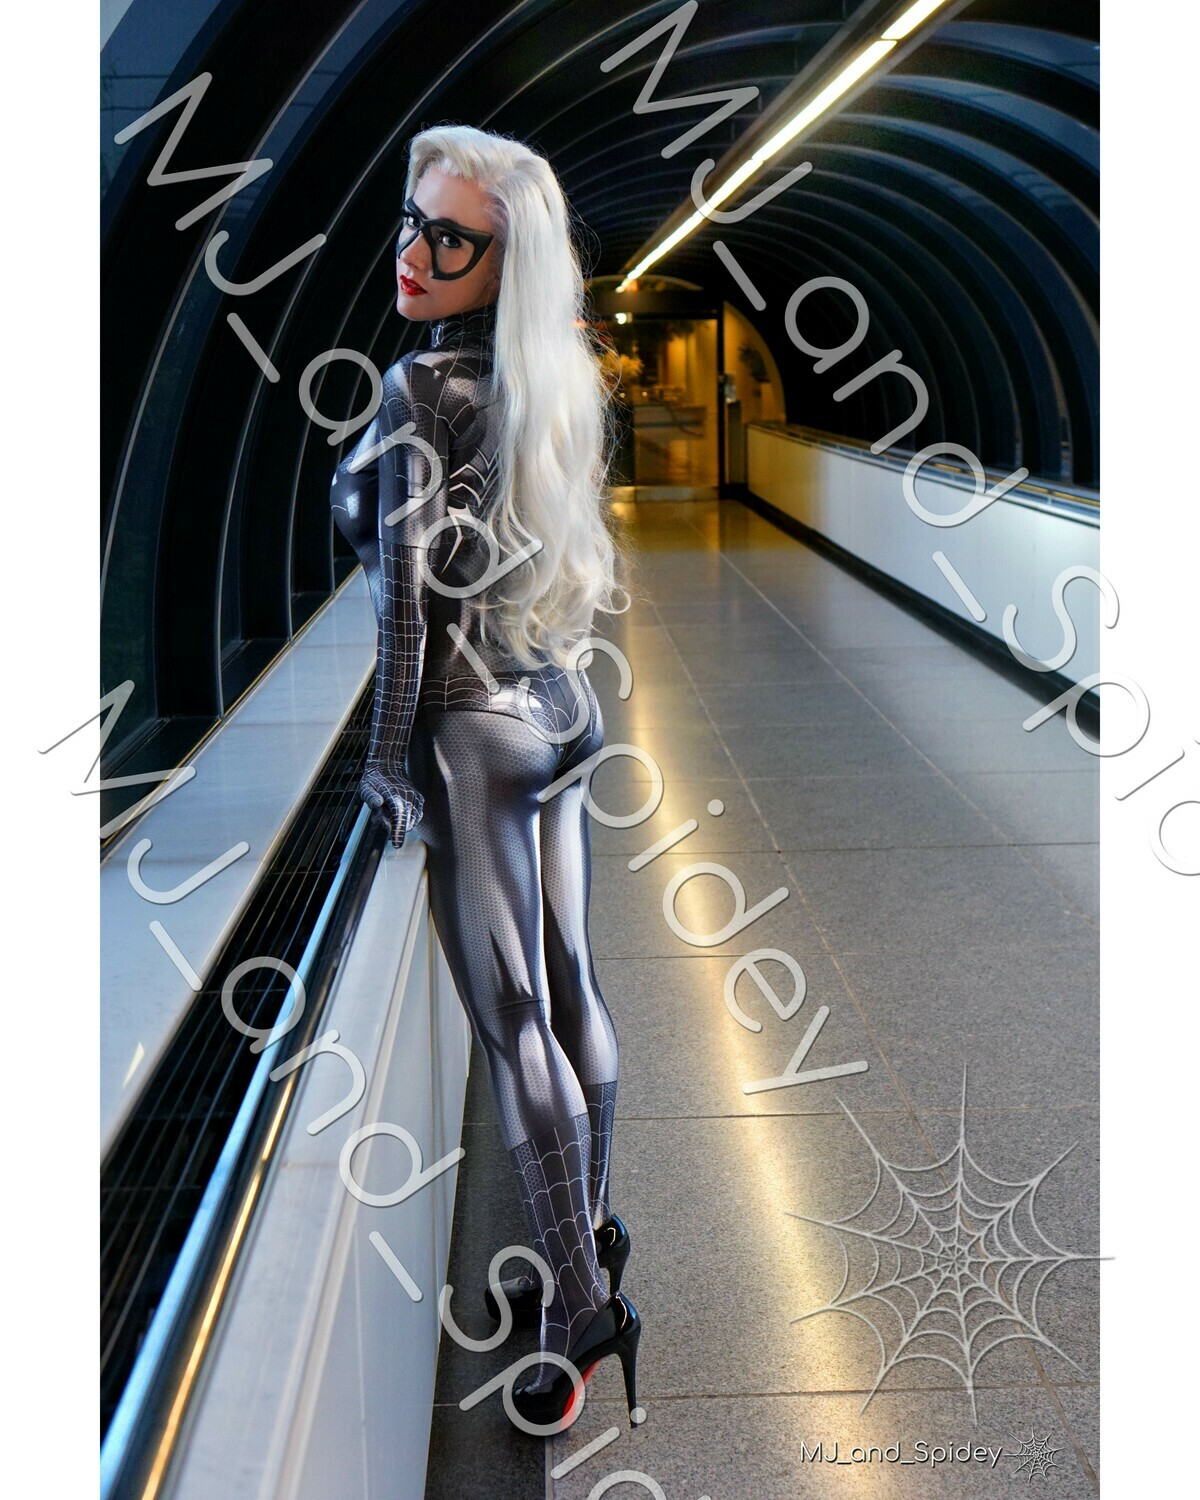 Marvel - Spider-Man - Black Cat - Symbiote No. 3 - 8x10 Cosplay Print (@MJ_and_Spidey, MJ and Spidey, Comics)